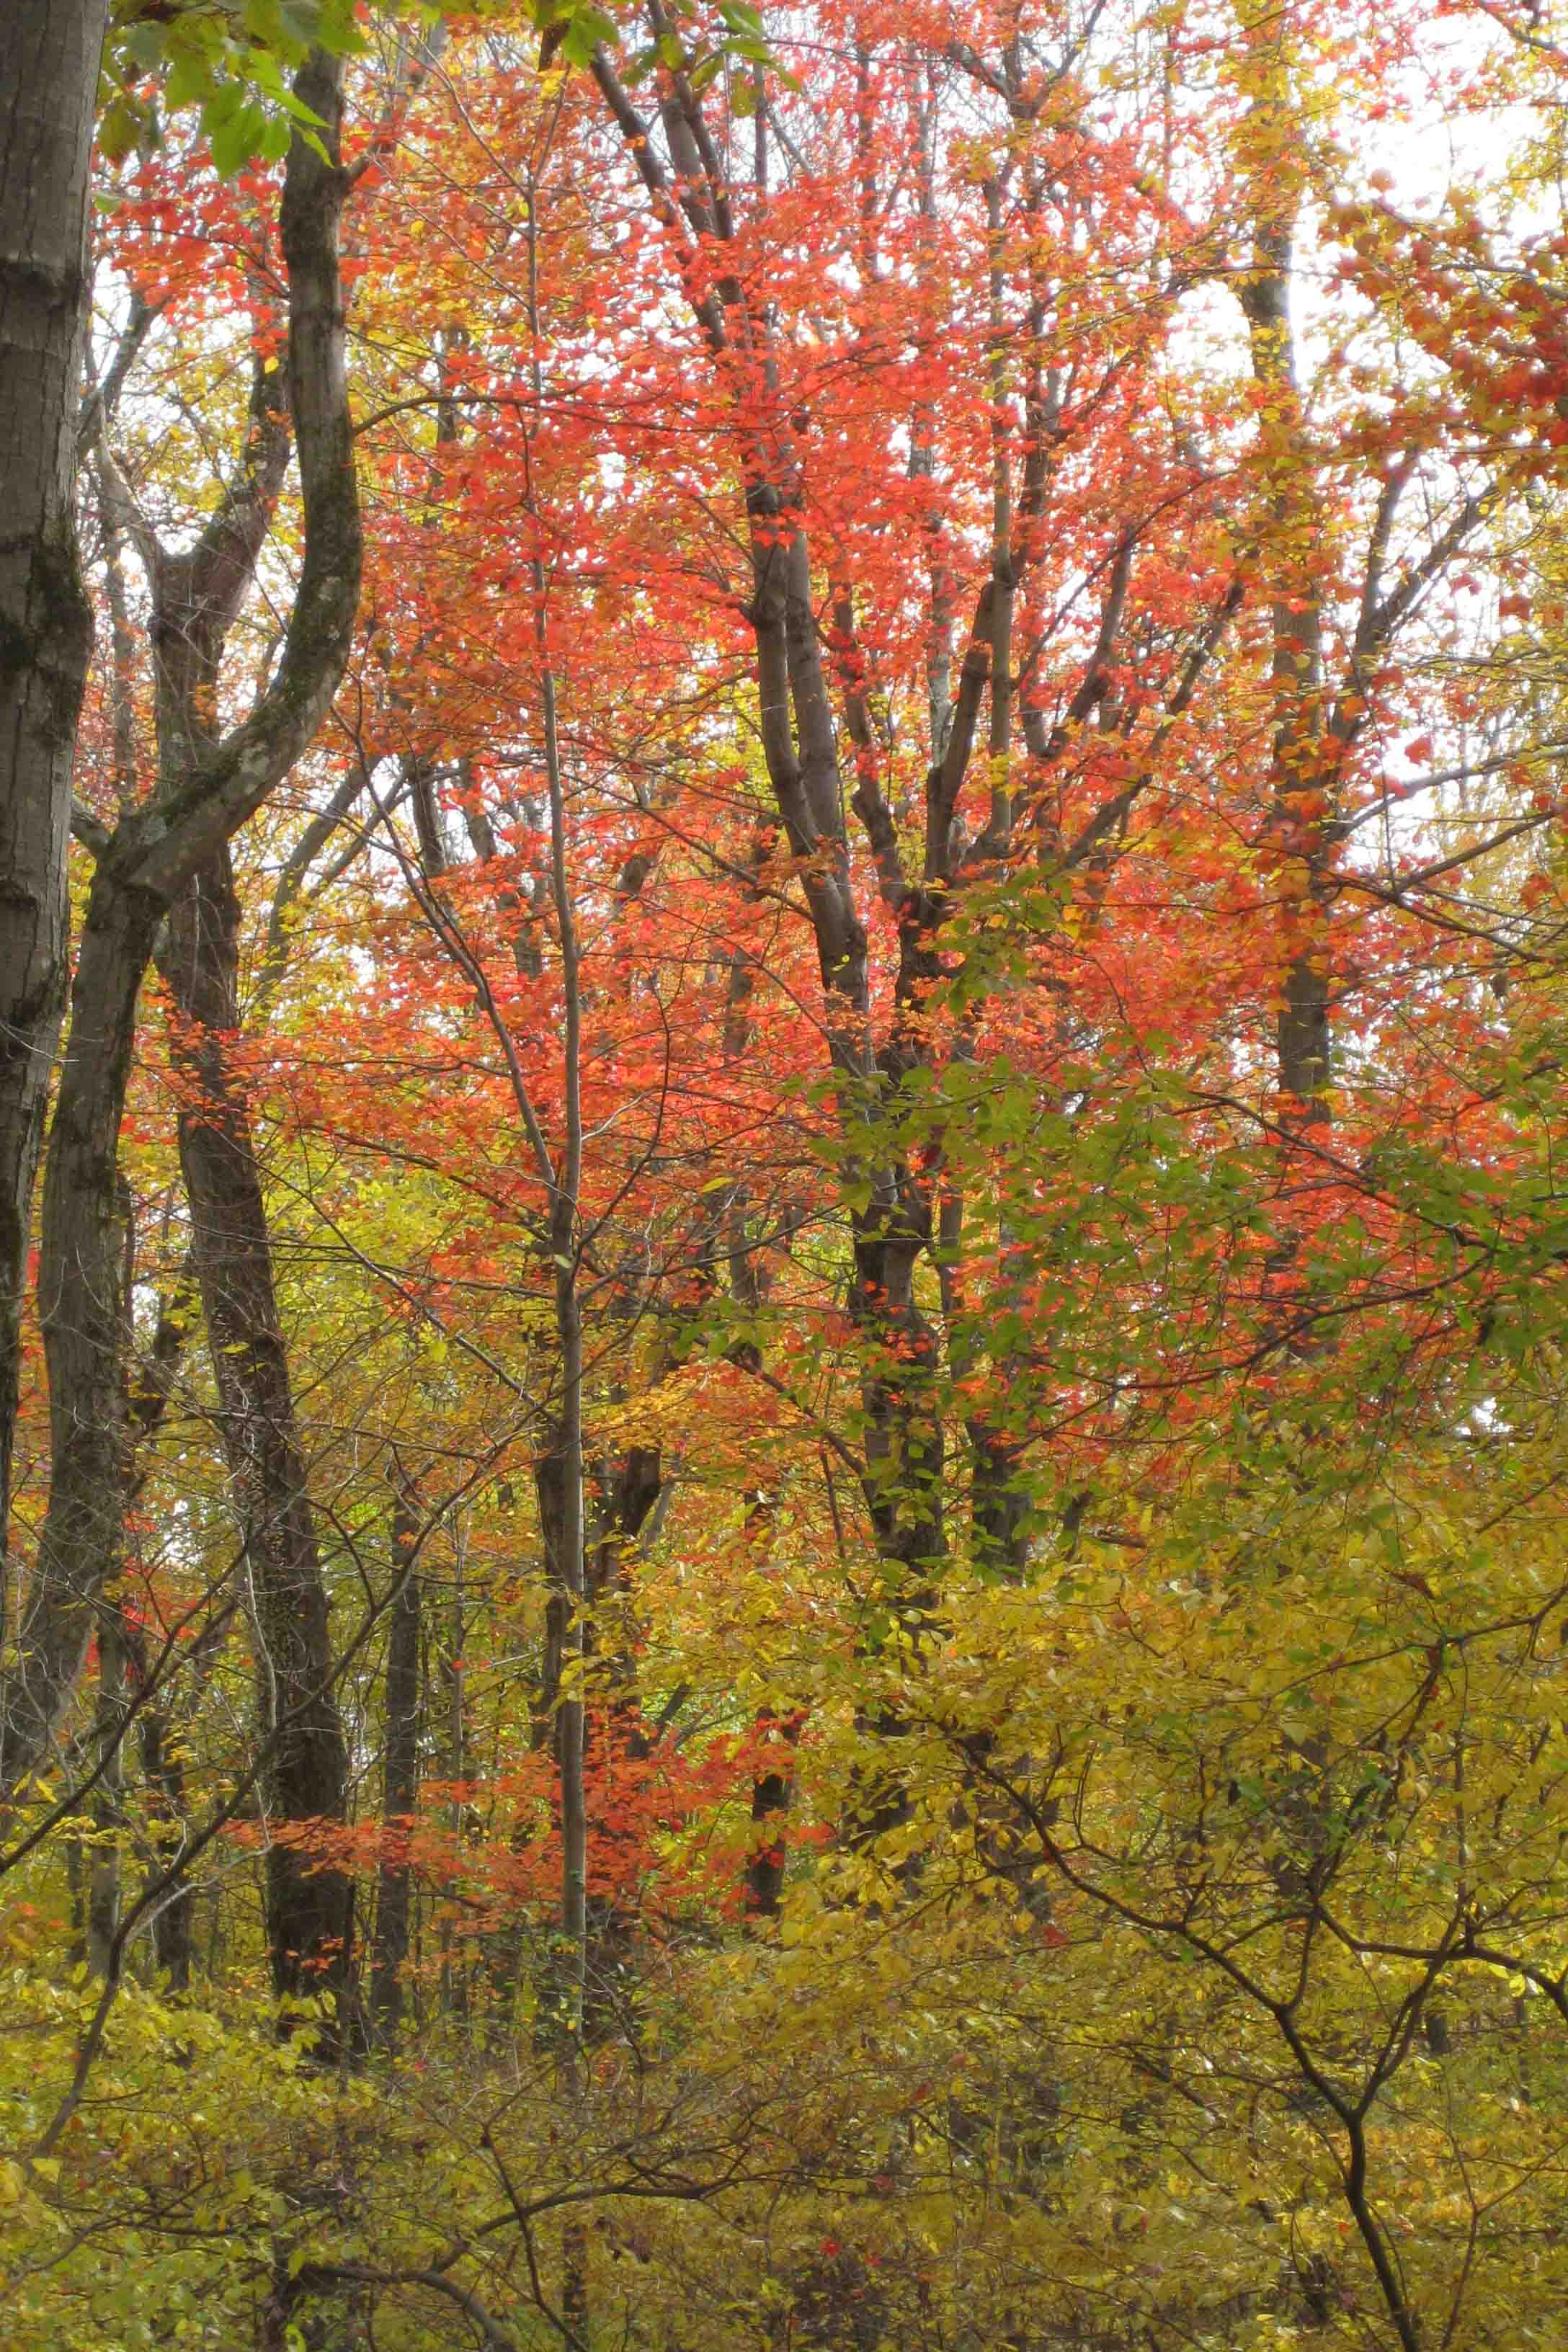 fall foliage at Topsmead state forest